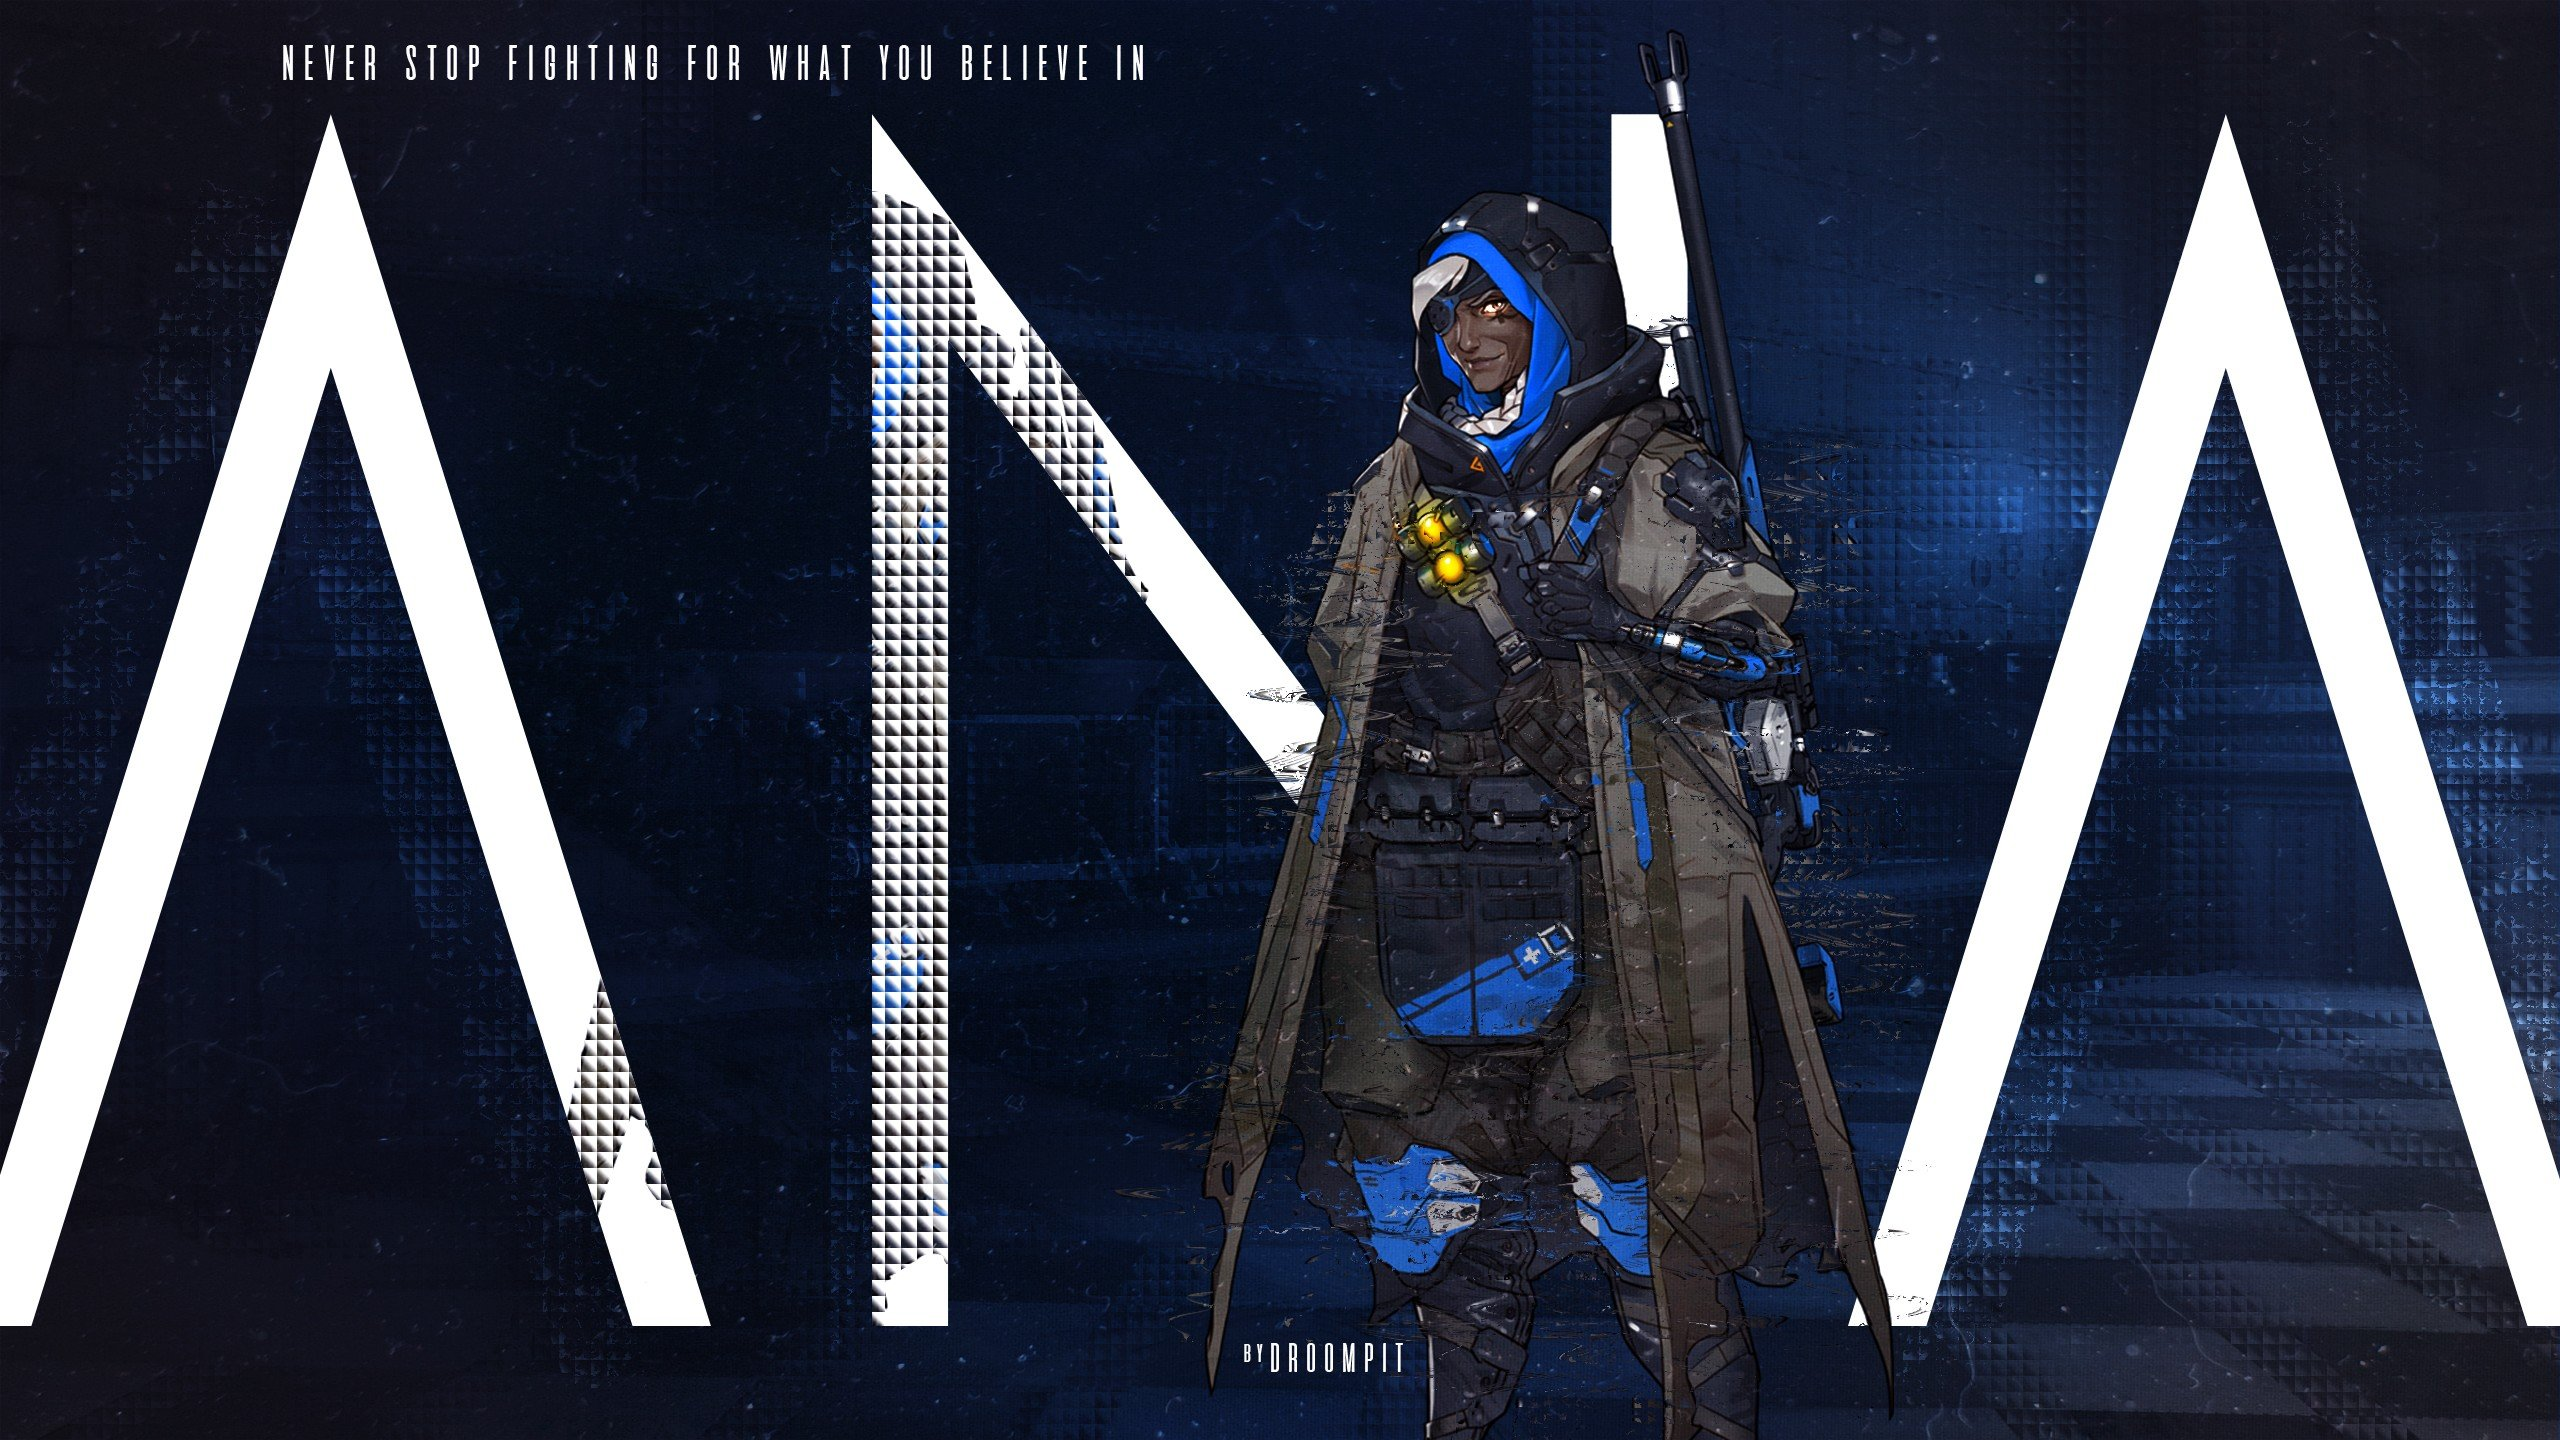 Ana Overwatch Overwatch Hd Wallpapers Desktop And Mobile Images Photos